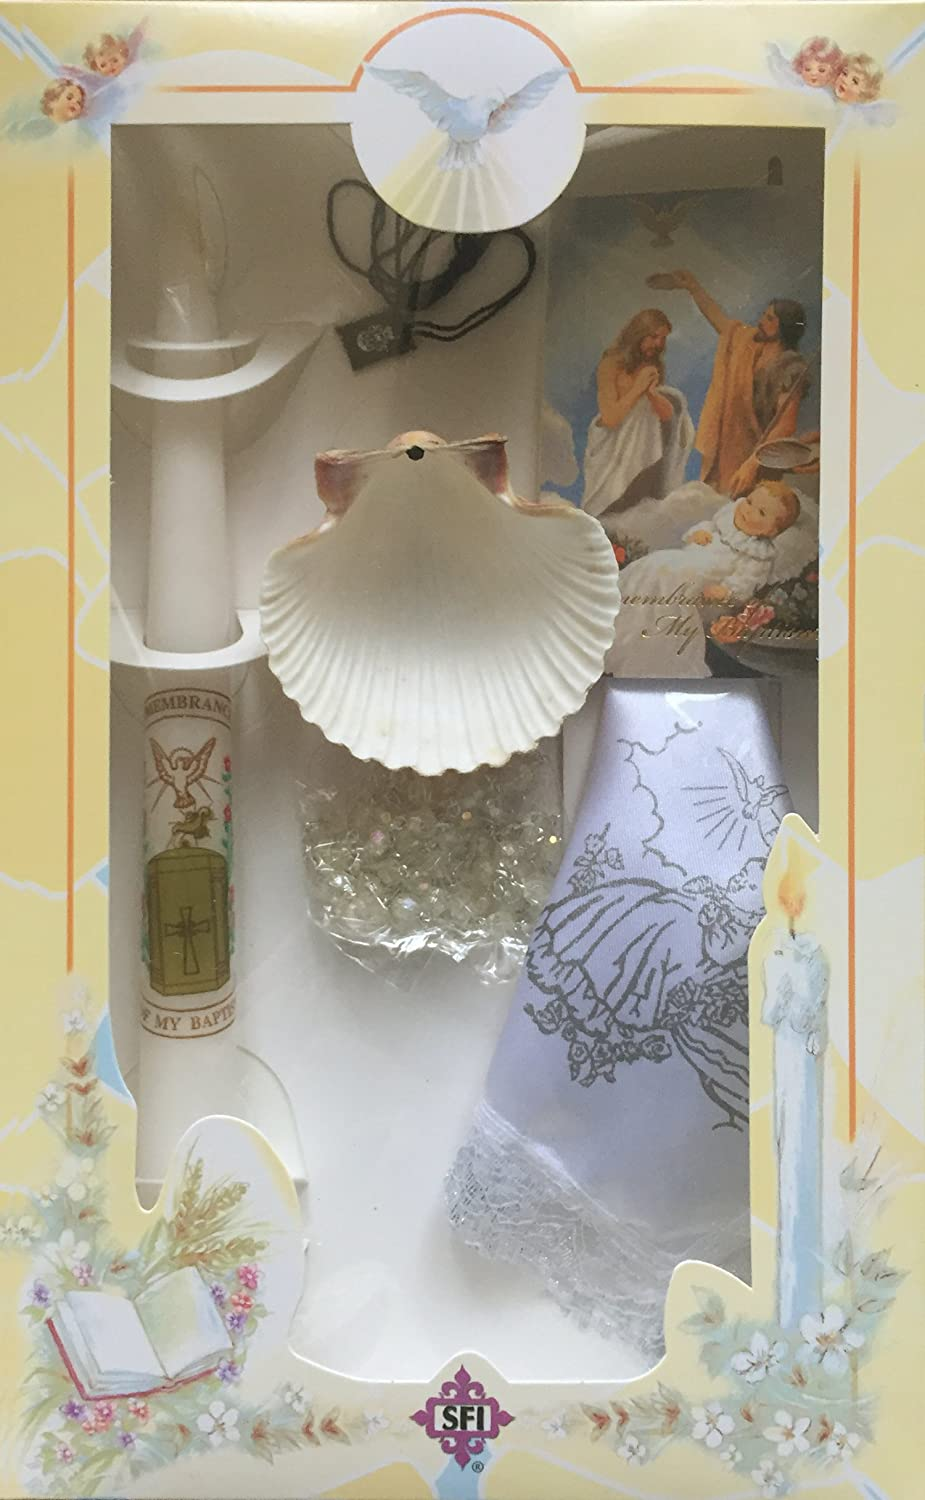 New Boys or Girls Christening Baptism Candle Box Set Shell Missal in Spanish Juego de Vela Bautizo Espanol SFI